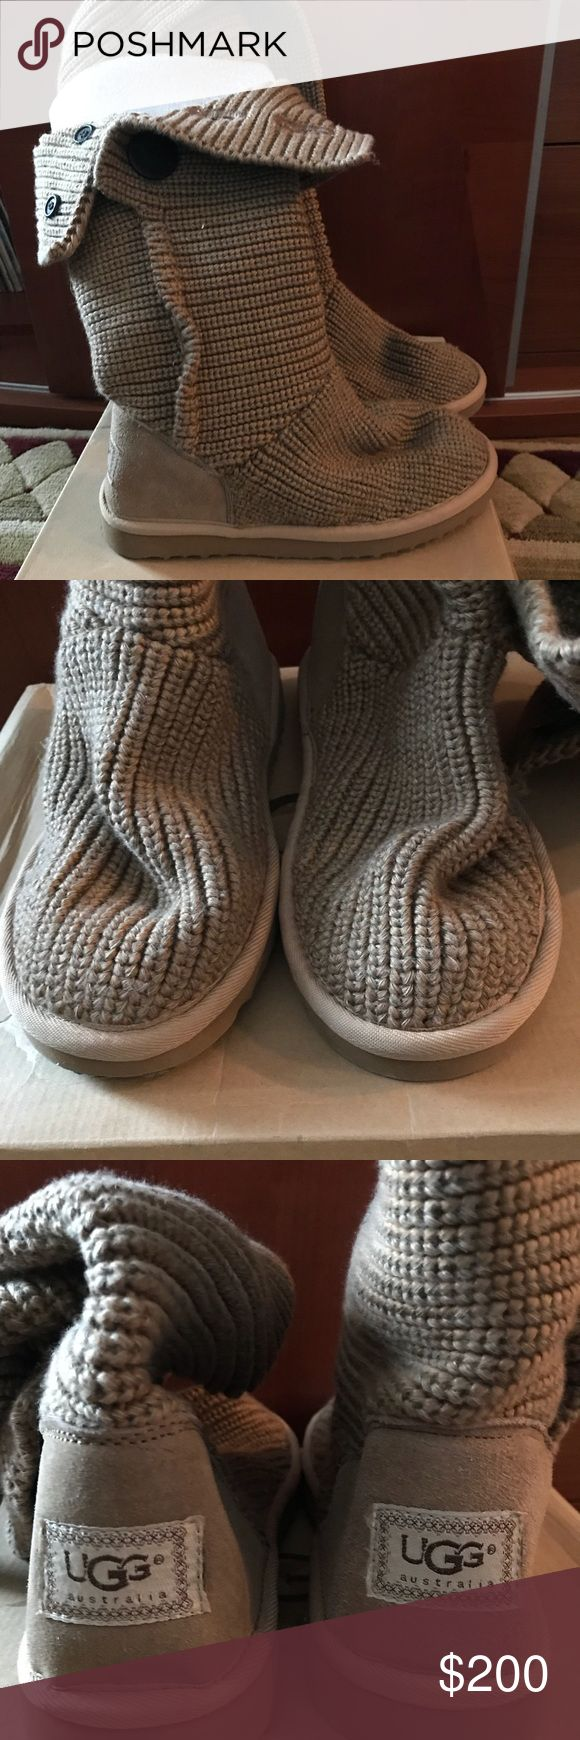 """UGG Classic Cardy knit boots UGG """"Classic Cardy"""" camel slouchy knit boots with fold over buttonhole top, shearling insole, rubber outer sole. So cute with jeans or tights. Worn once as pics show very little wear. With original box. UGG Shoes Winter & Rain Boots"""